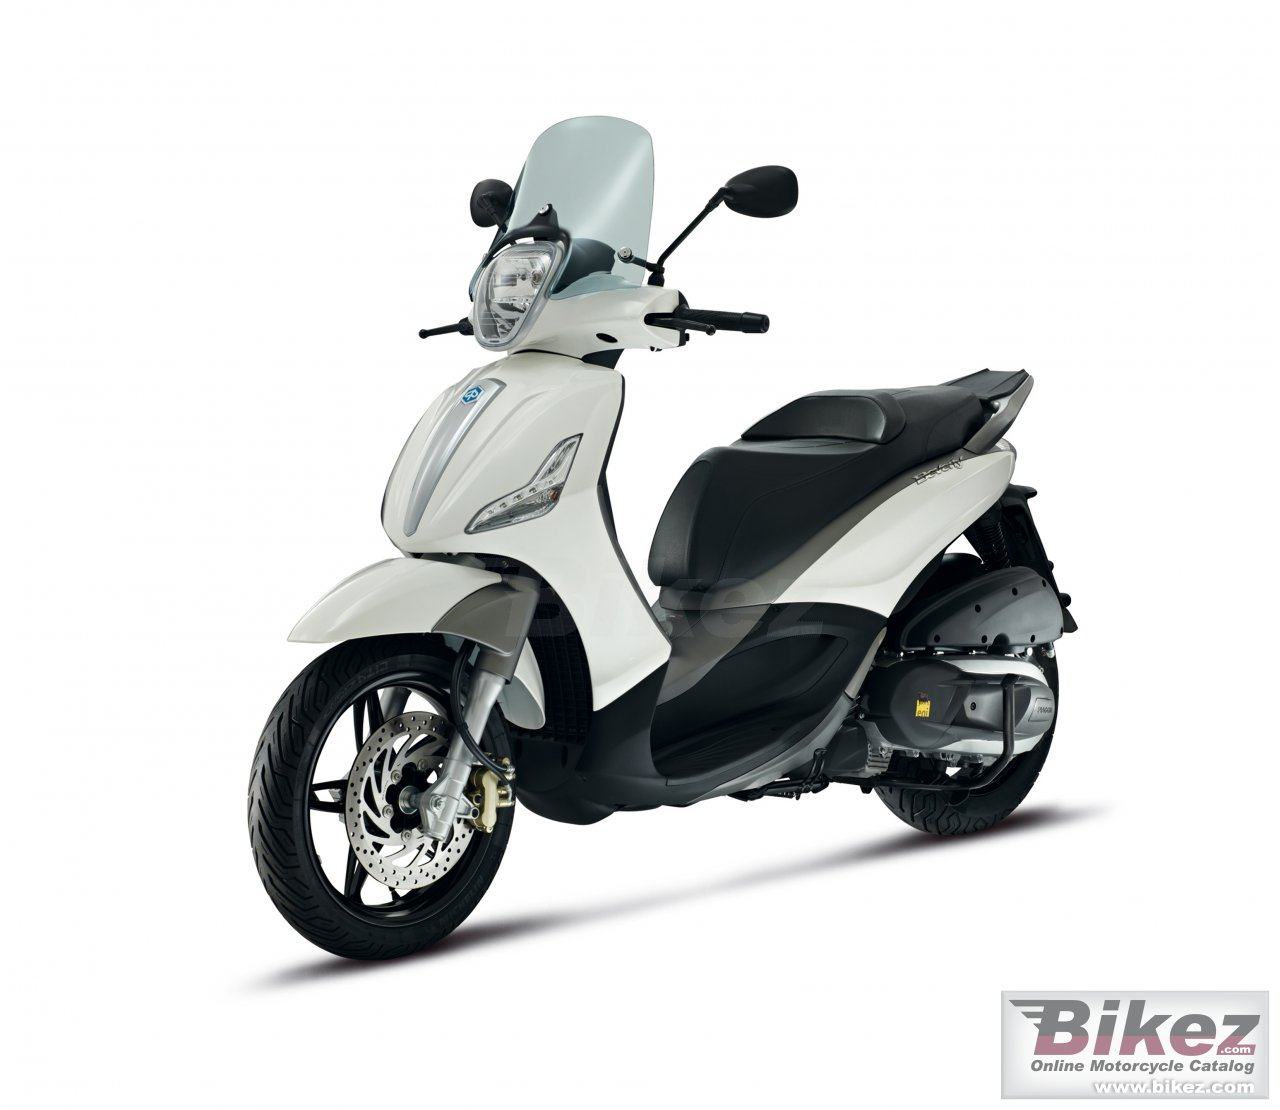 Big Piaggio bv sport touring 350ie picture and wallpaper from Bikez.com